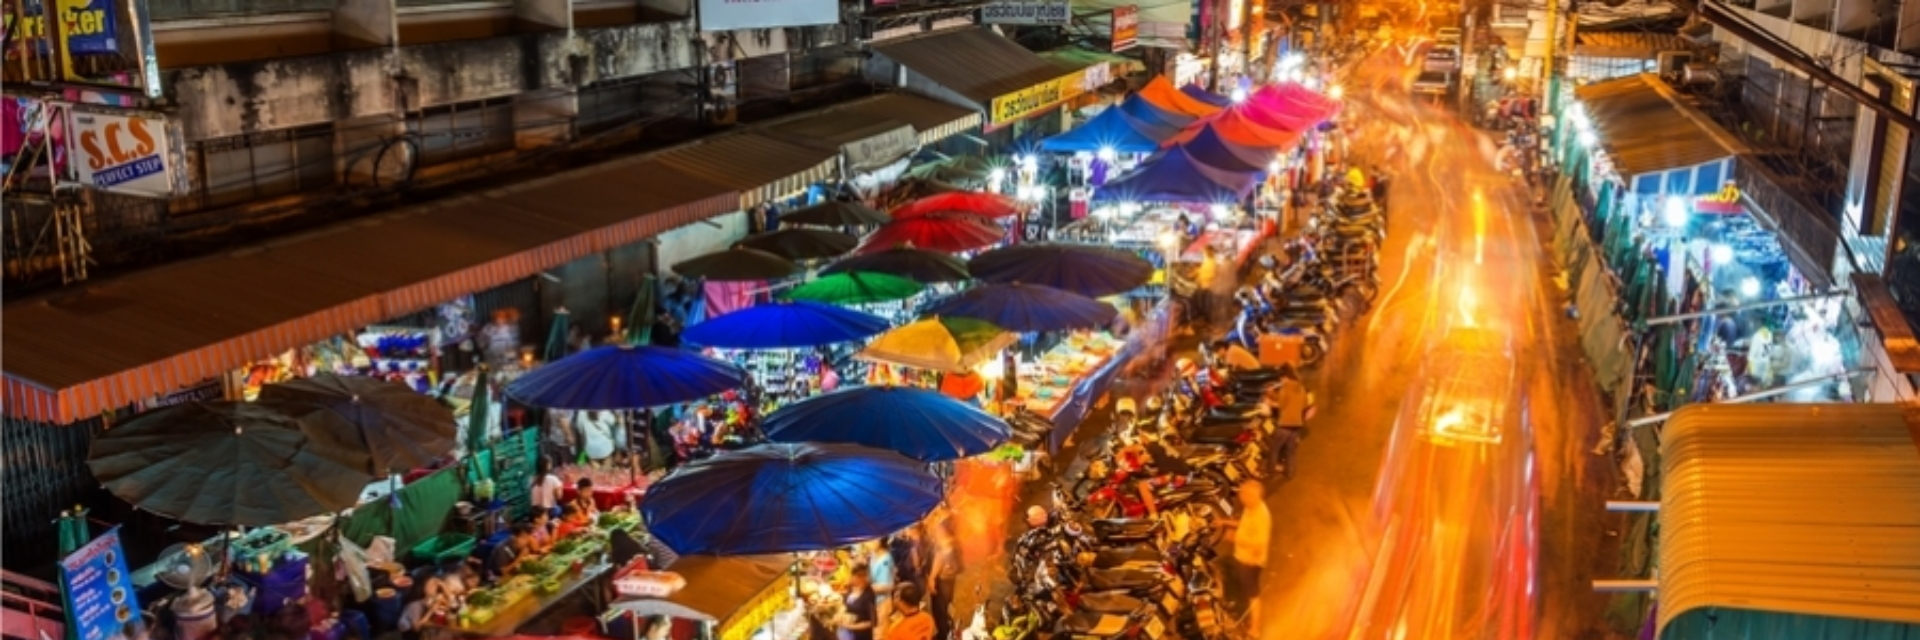 A VIVID NIGHT OUT IN CHIANG MAI